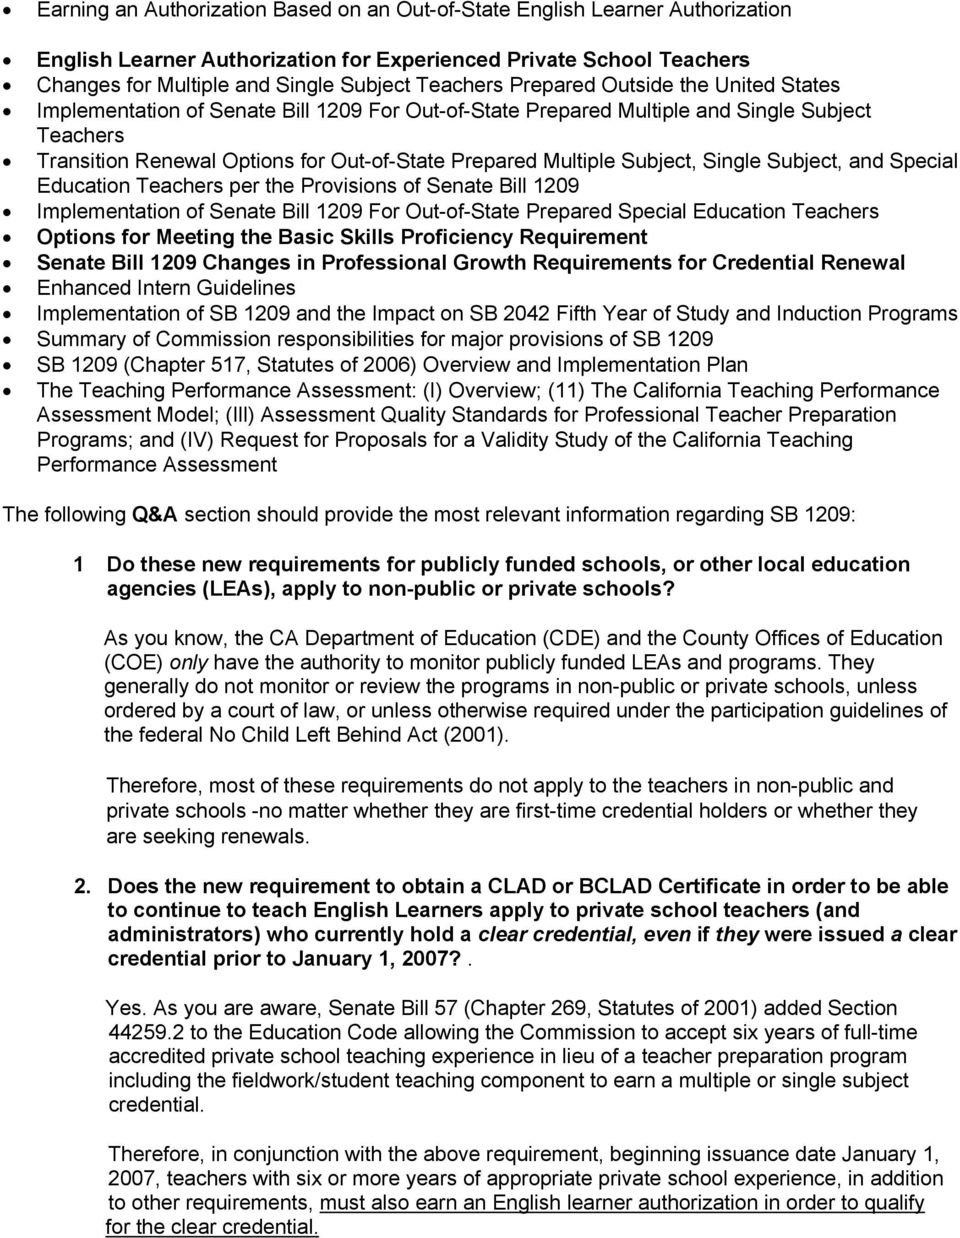 Subject, Single Subject, and Special Education Teachers per the Provisions of Senate Bill 1209 Implementation of Senate Bill 1209 For Out-of-State Prepared Special Education Teachers Options for